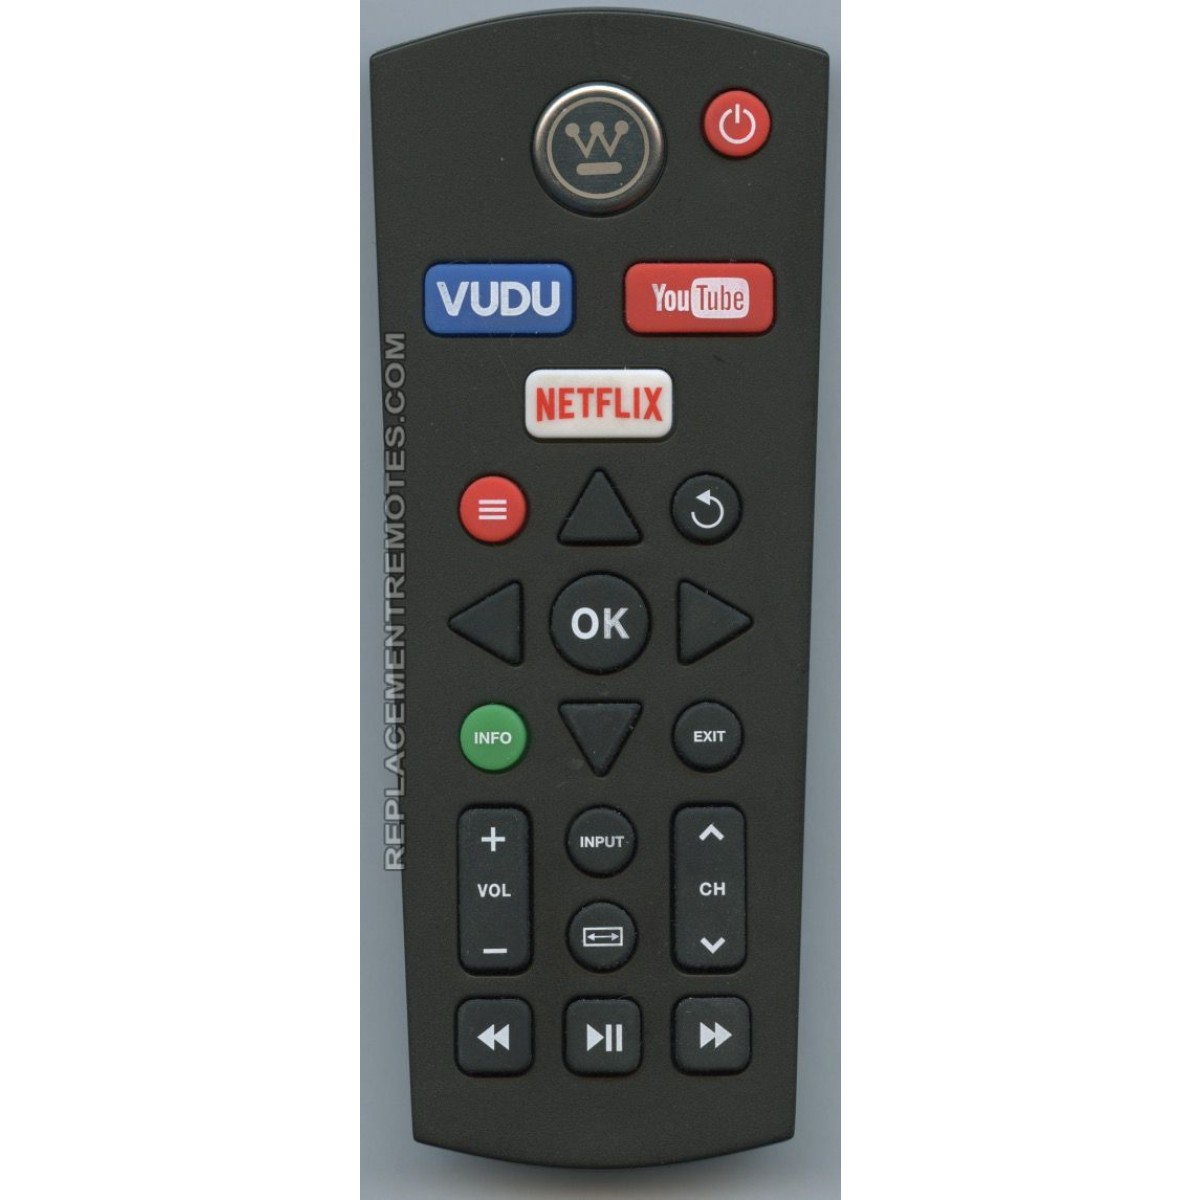 Westinghouse XHY-386-01 Smart TV Remote Control